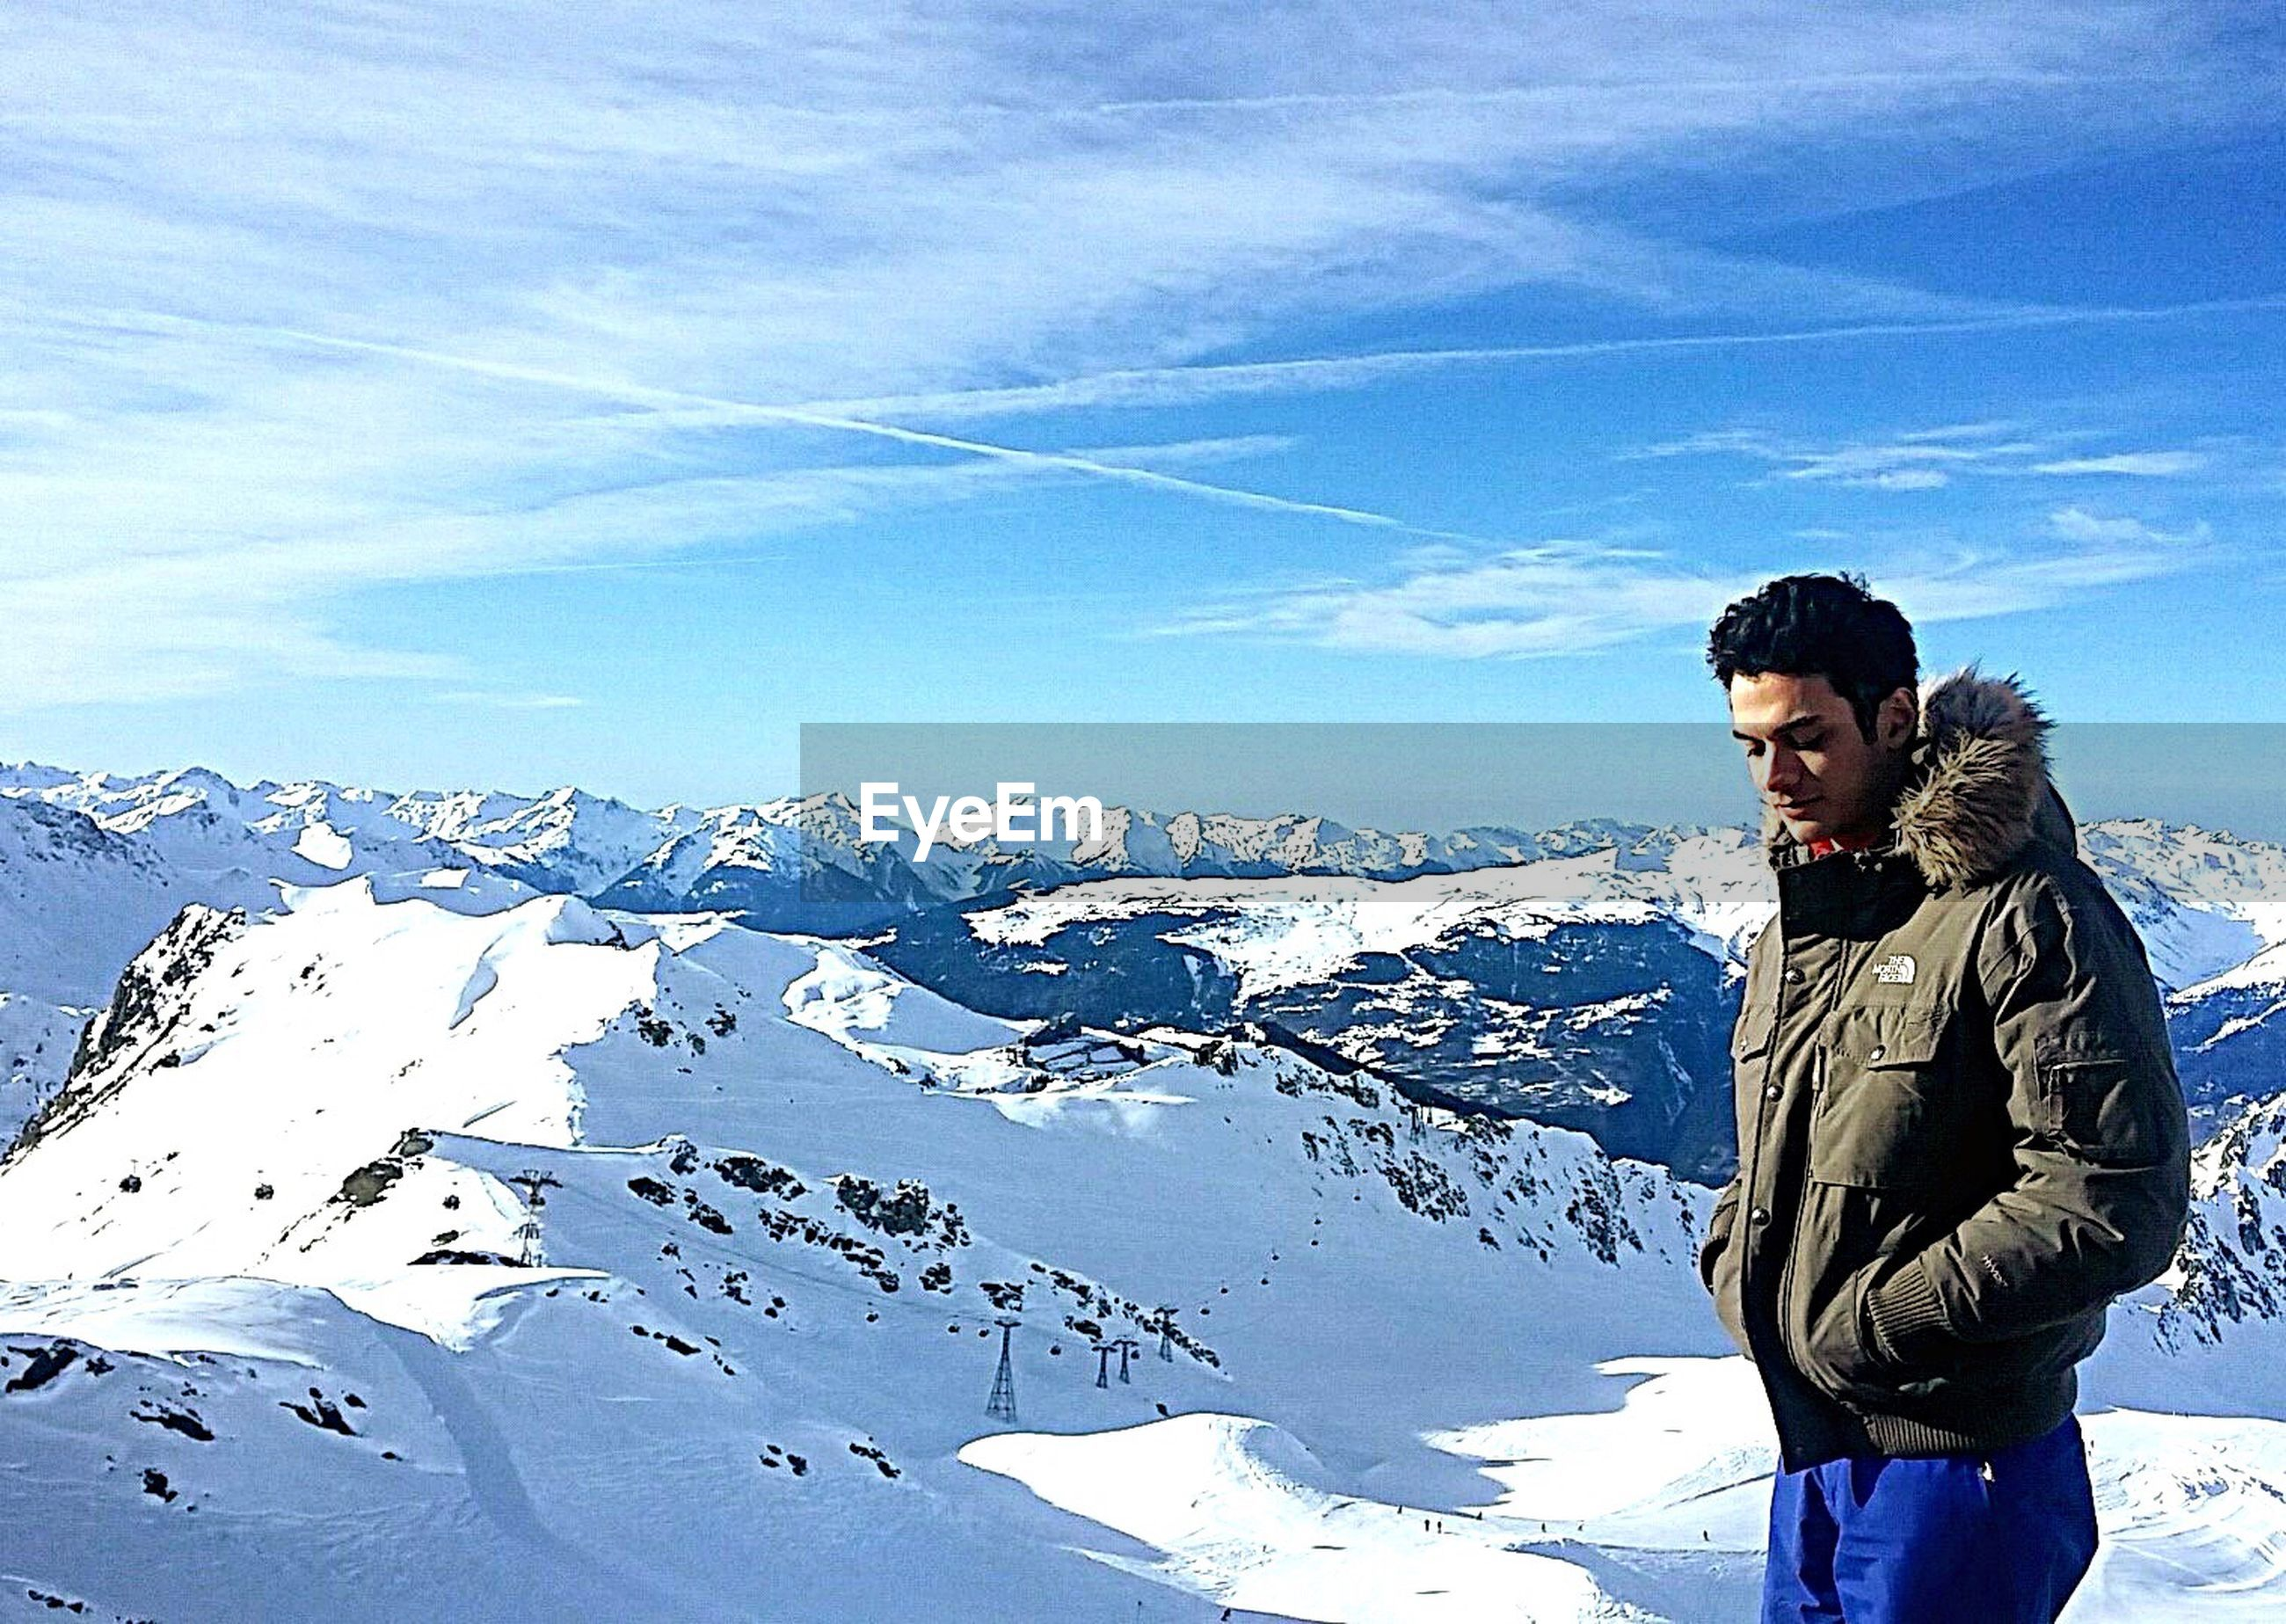 winter, lifestyles, snow, leisure activity, cold temperature, mountain, young adult, warm clothing, casual clothing, standing, sky, full length, person, landscape, season, tranquil scene, mountain range, tranquility